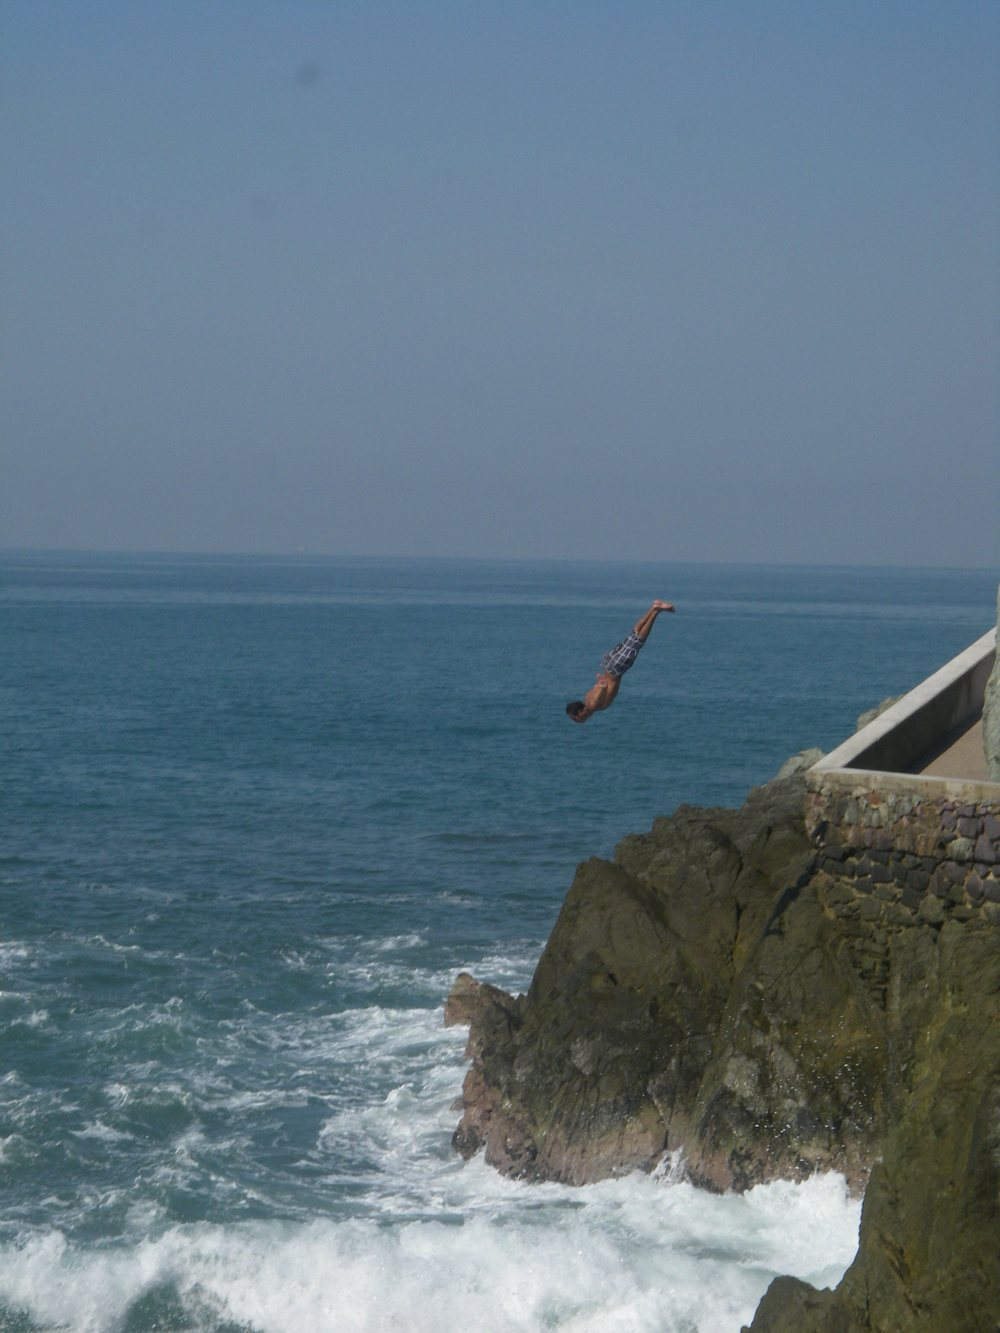 Cliff divers in Mexico